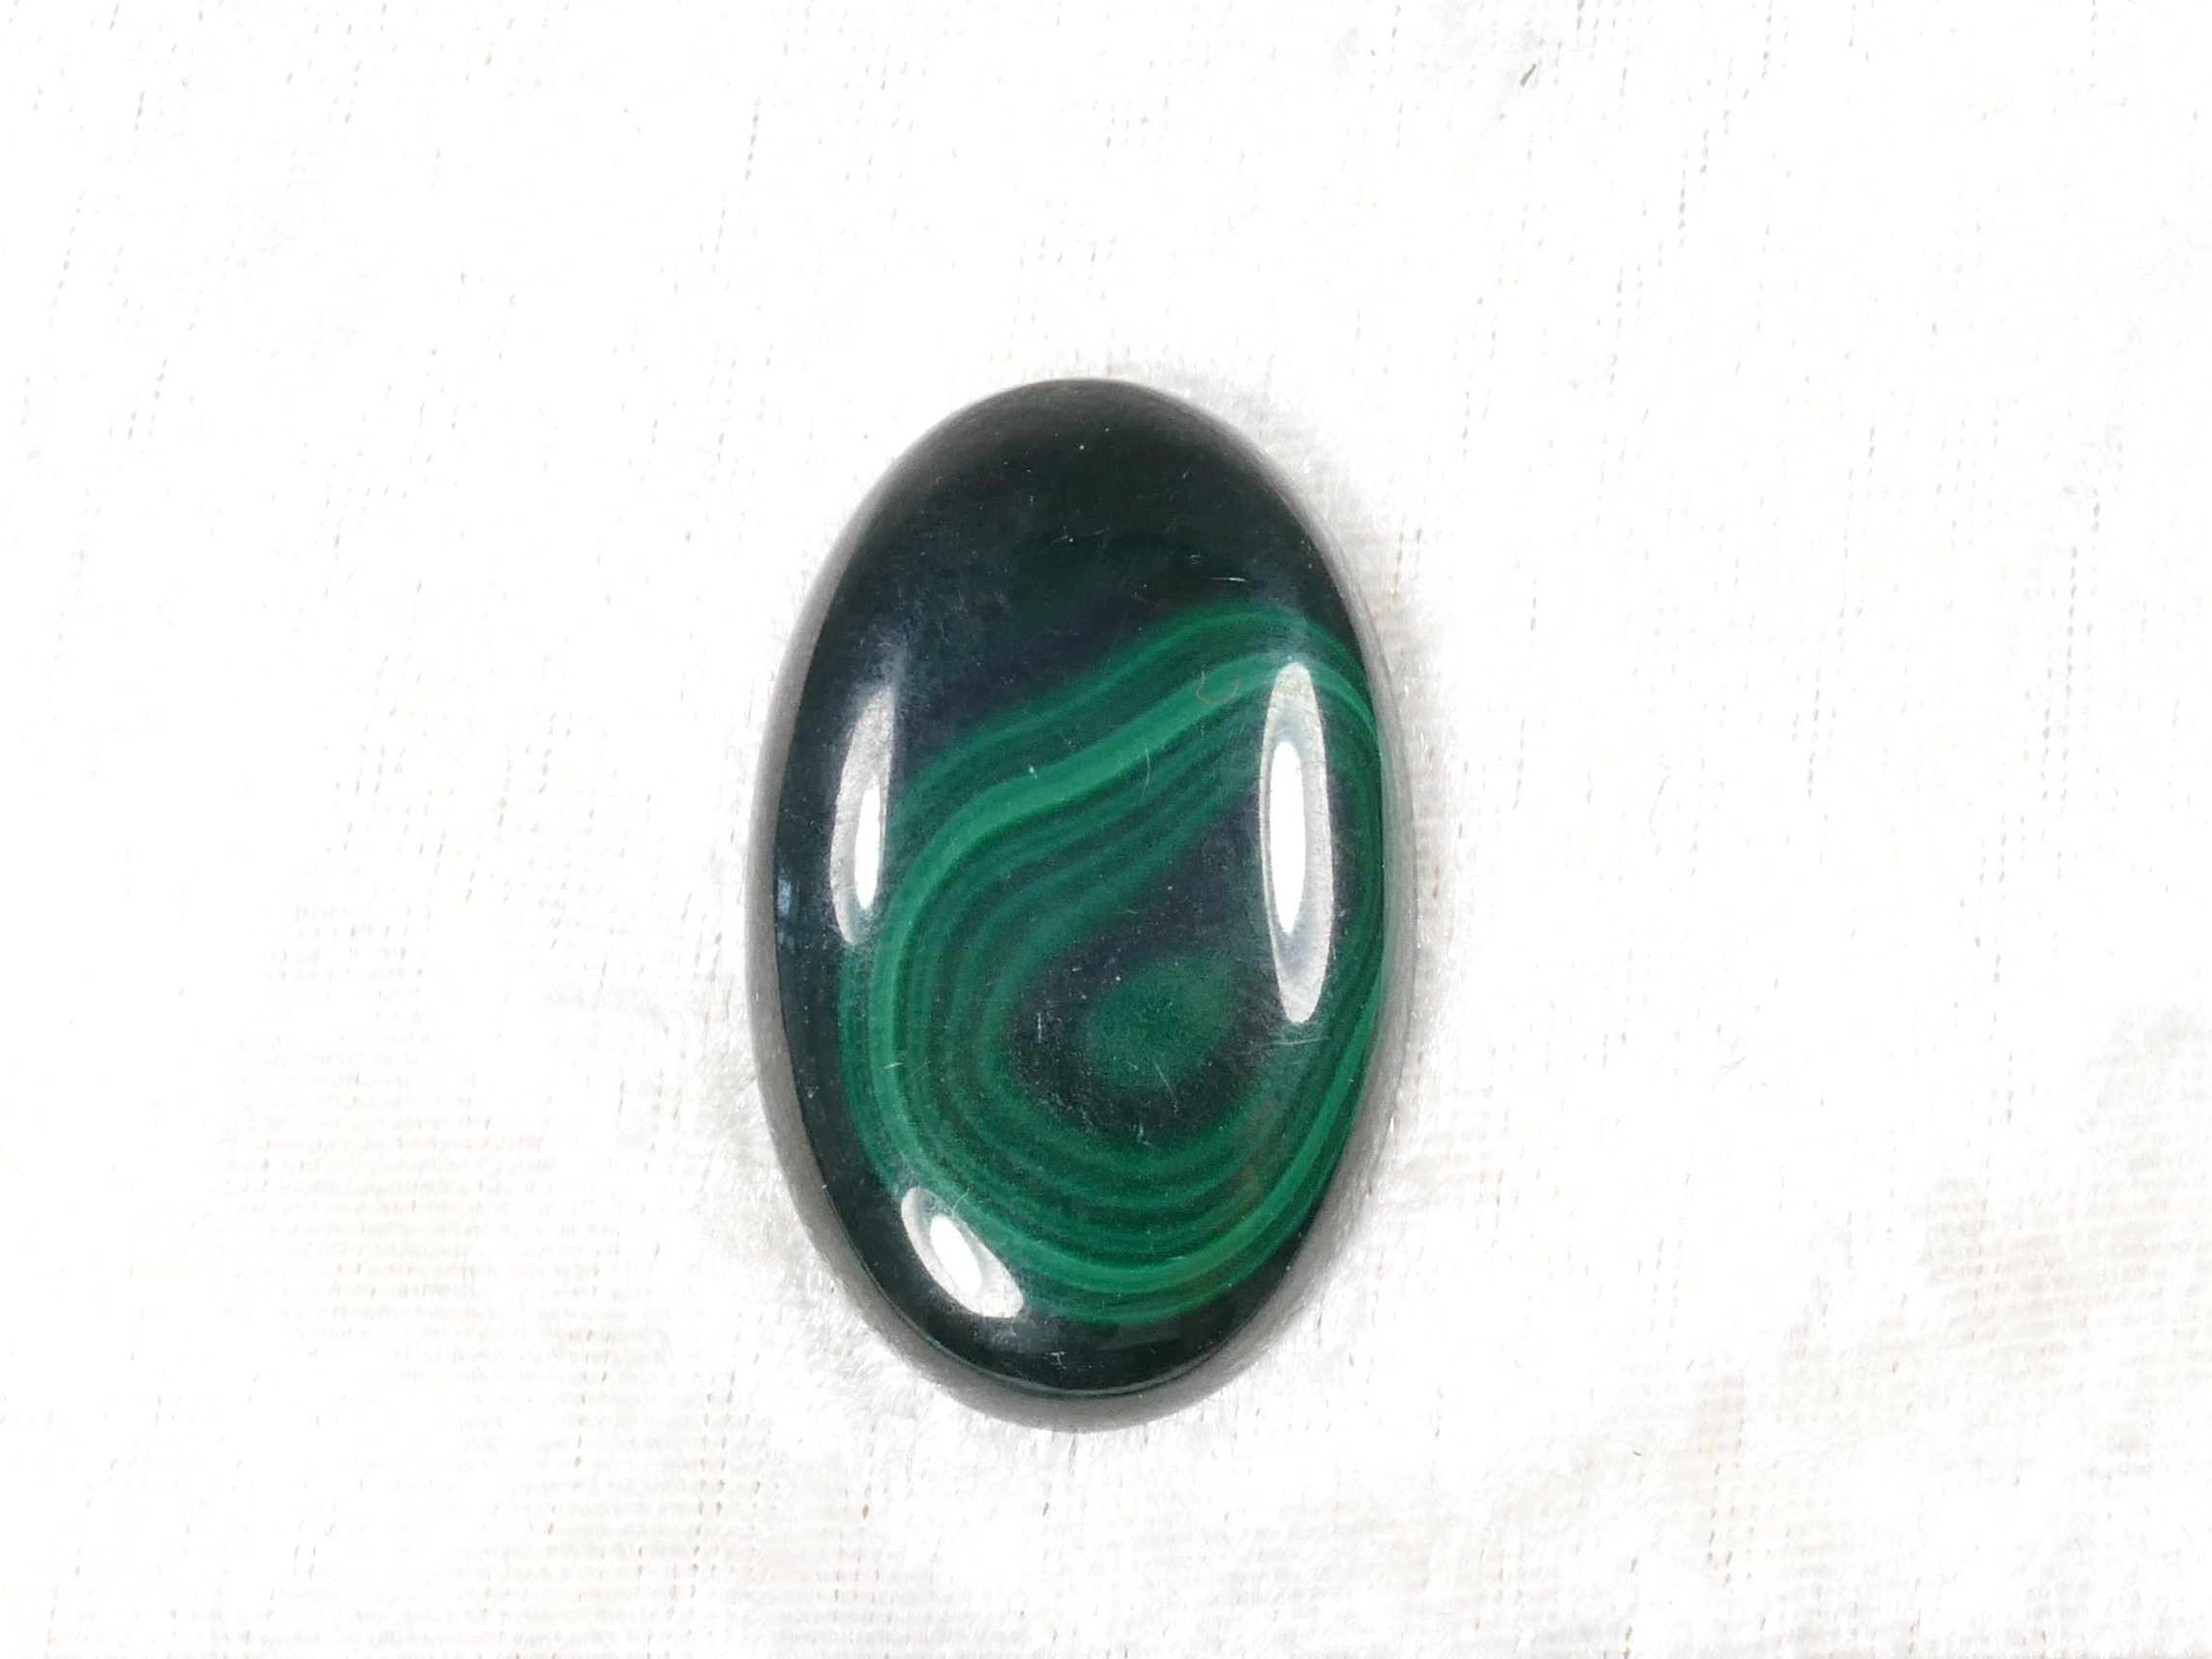 39.5x25mm Malachite naturelle en cabochon ovale 16.8g (#PM457G)